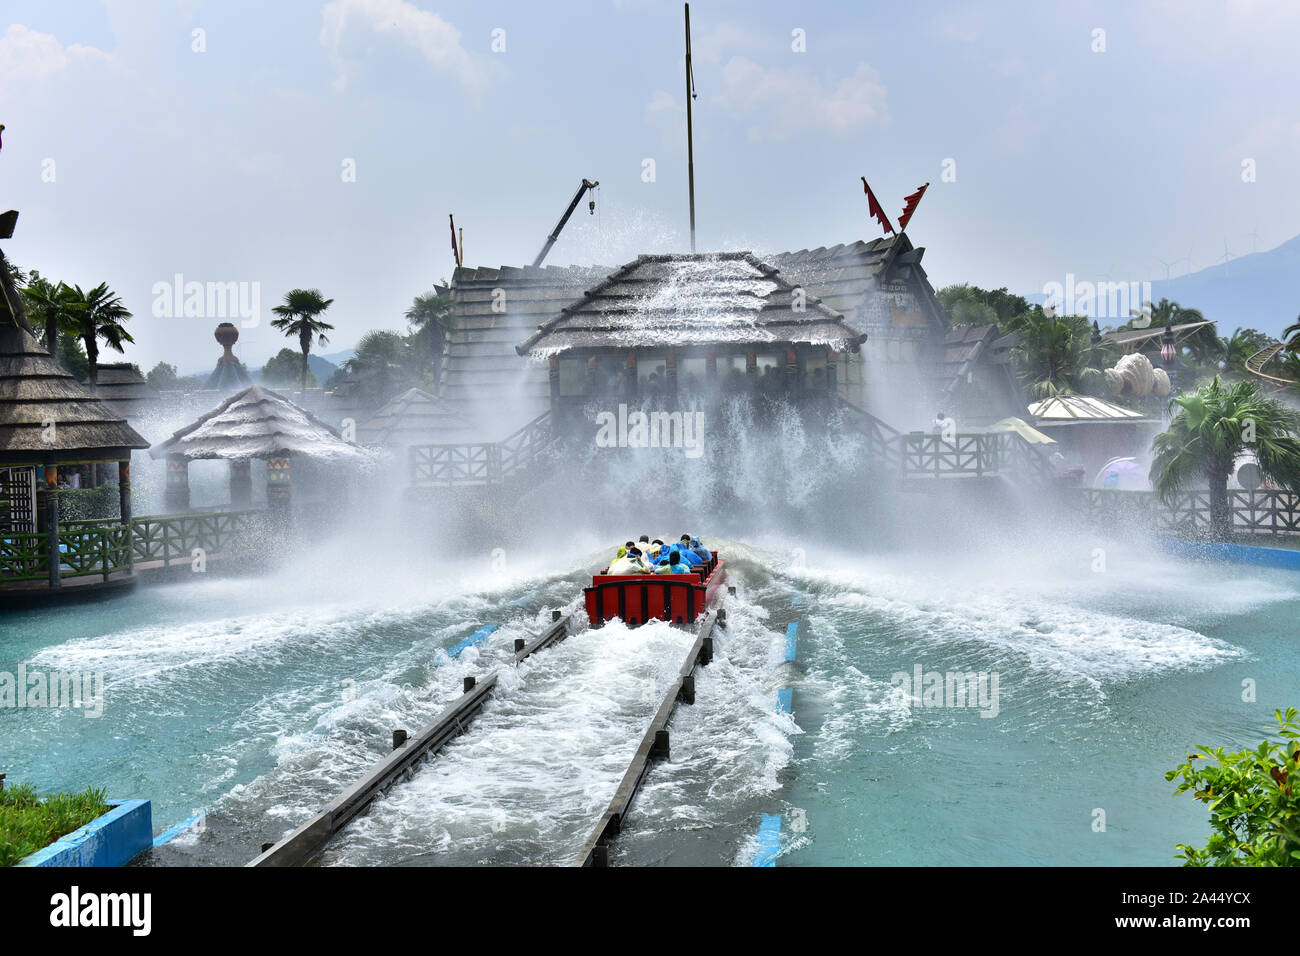 A rollar coaster with passengers is ''surfing'' in Guilin Merryland Theme Part in Guilin city, south China's Guangxi Zhuang Autonomous Region, 25 Augu Stock Photo